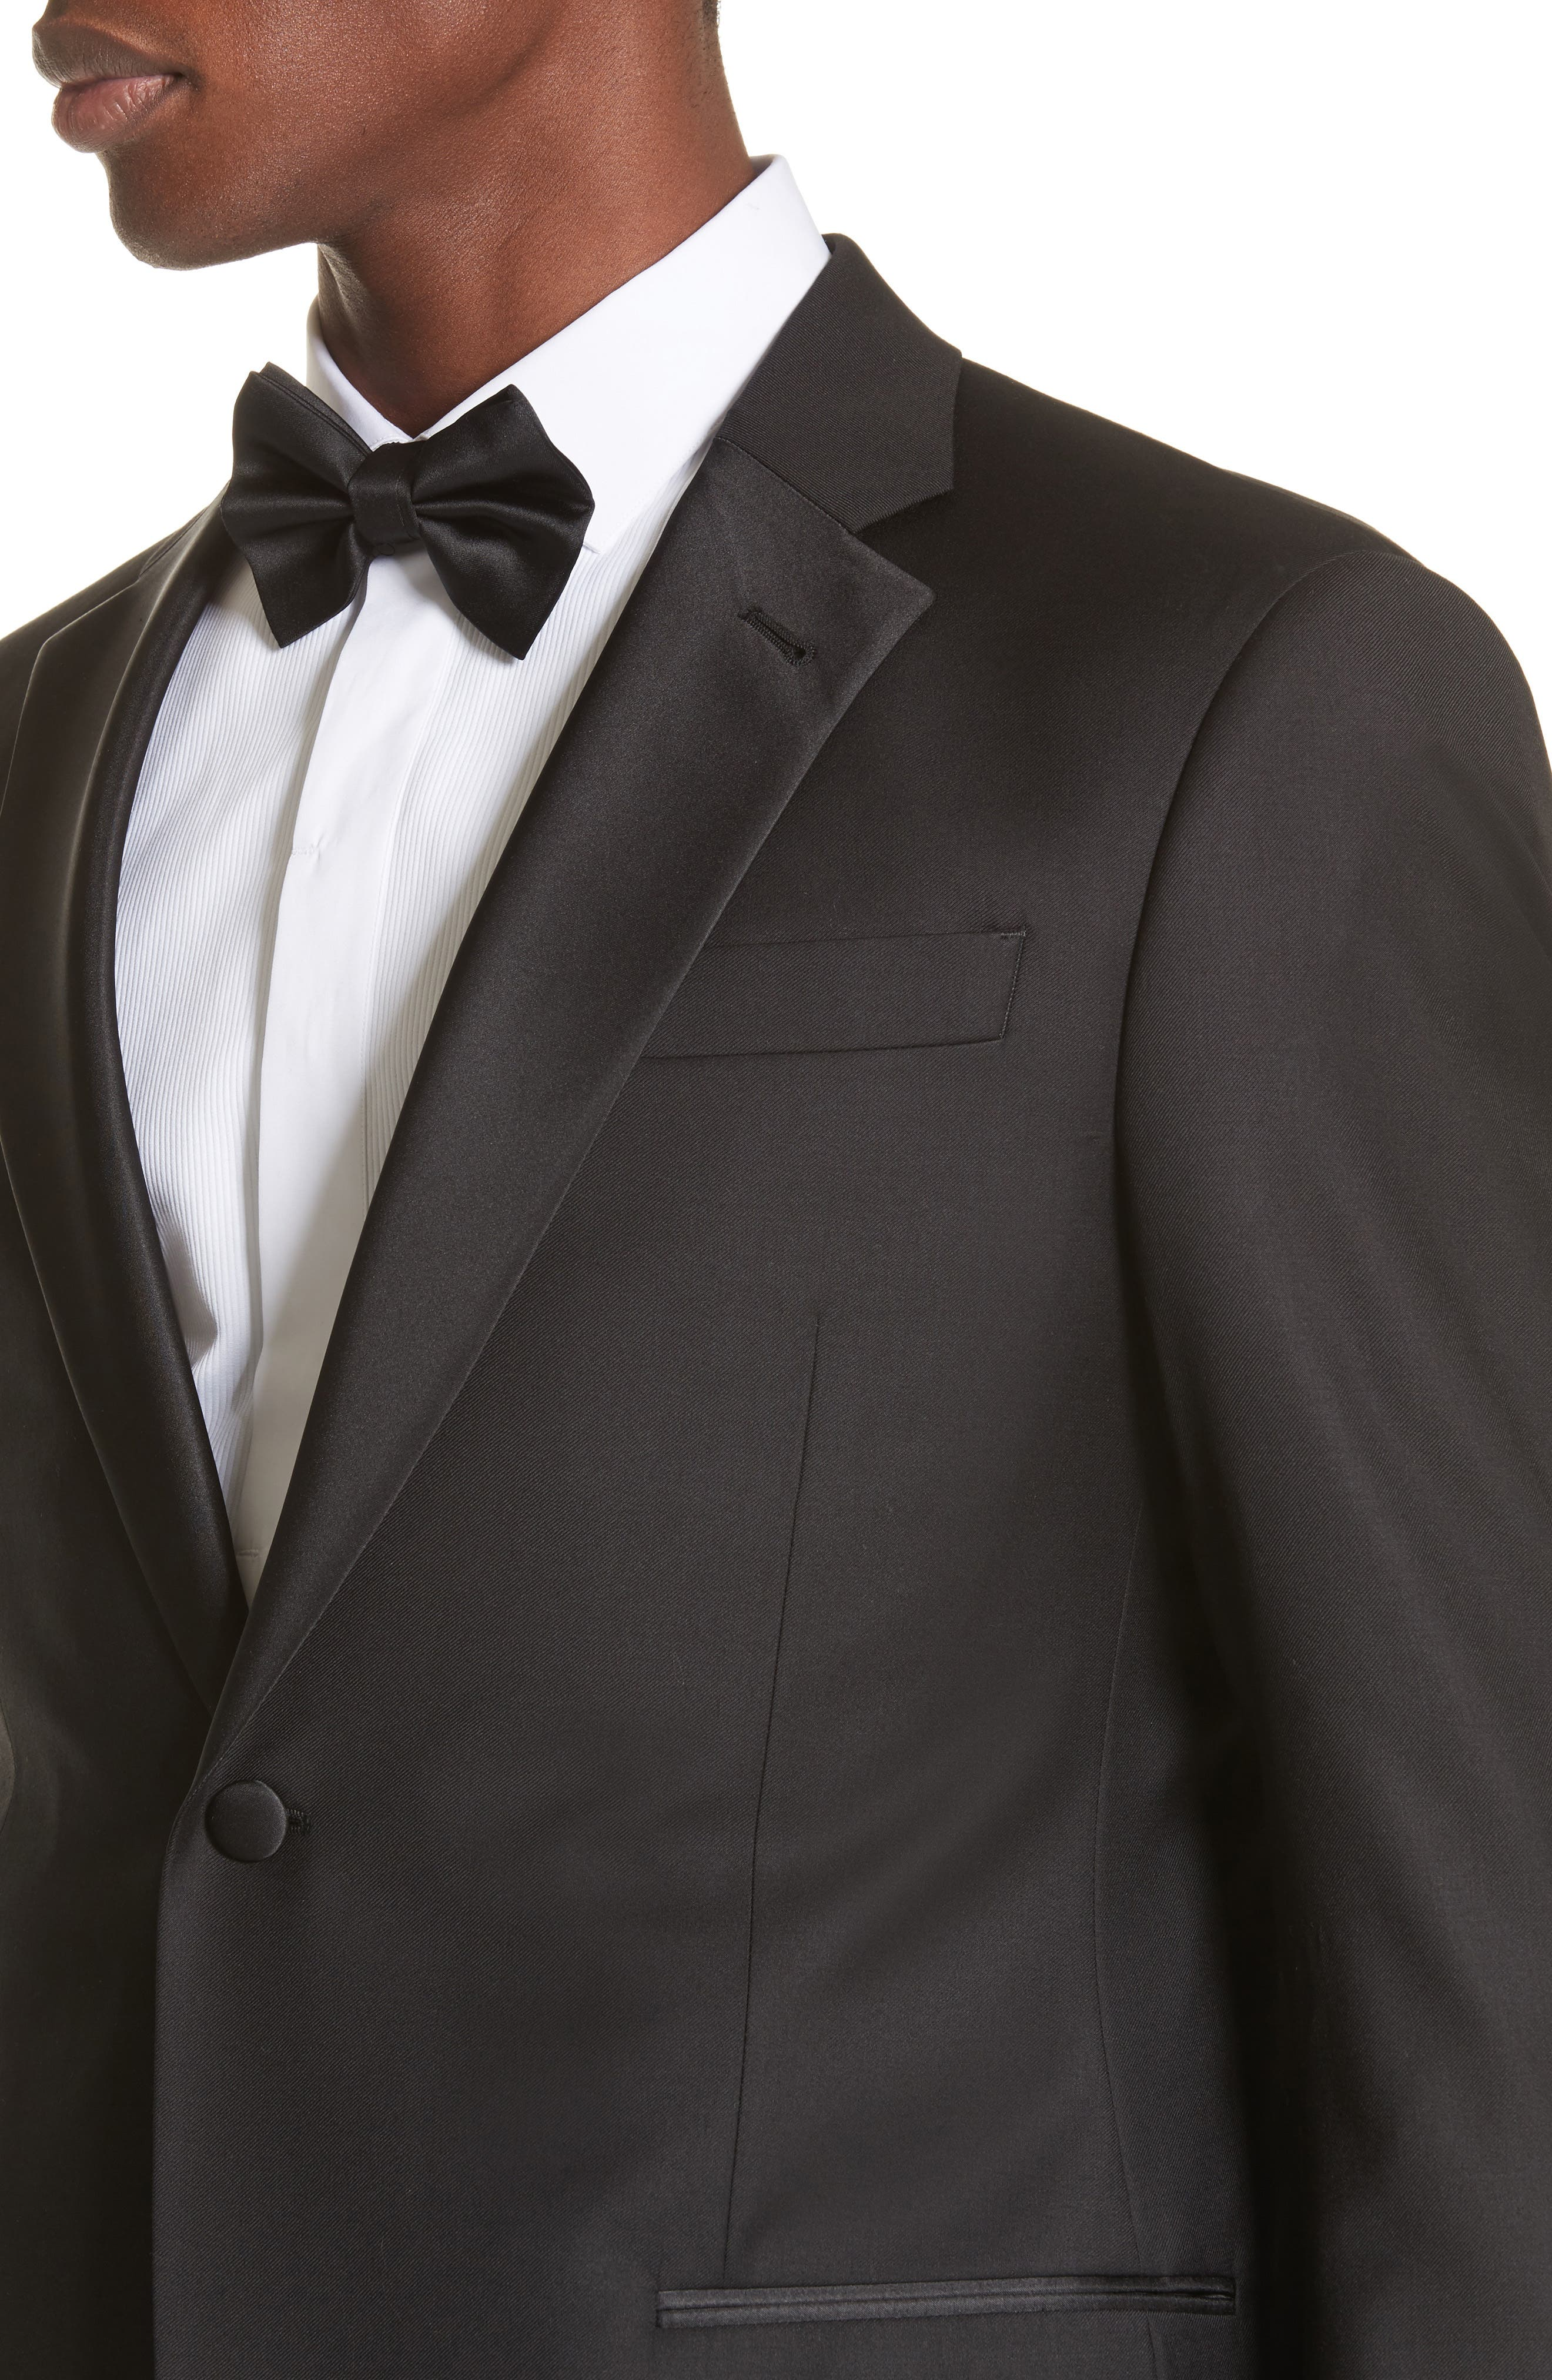 Trim Fit Wool Tuxedo,                             Alternate thumbnail 4, color,                             BLACK